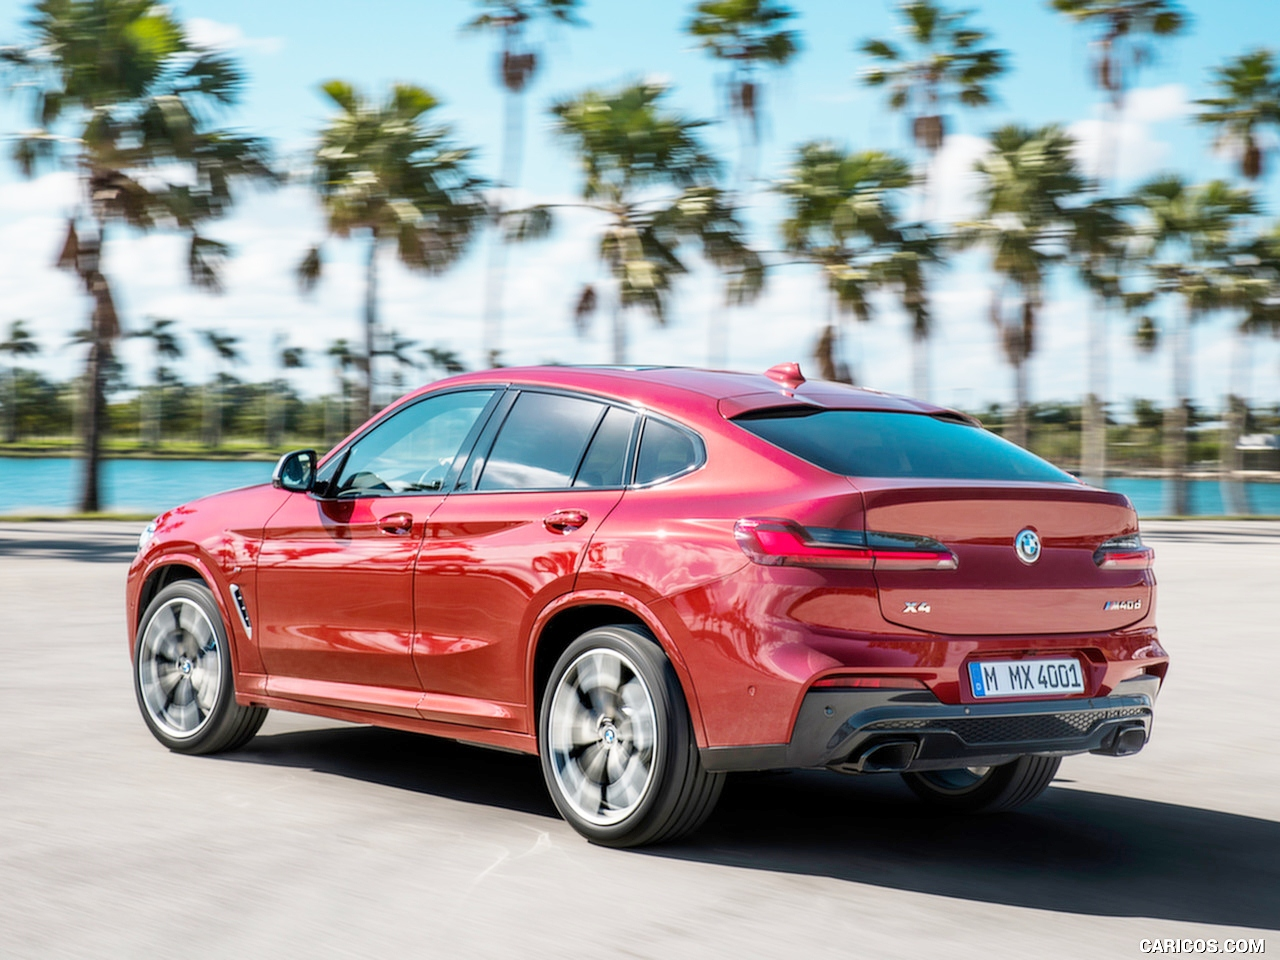 Can-canh-BMW-X4-2019-moi-ra-mat-anh-3